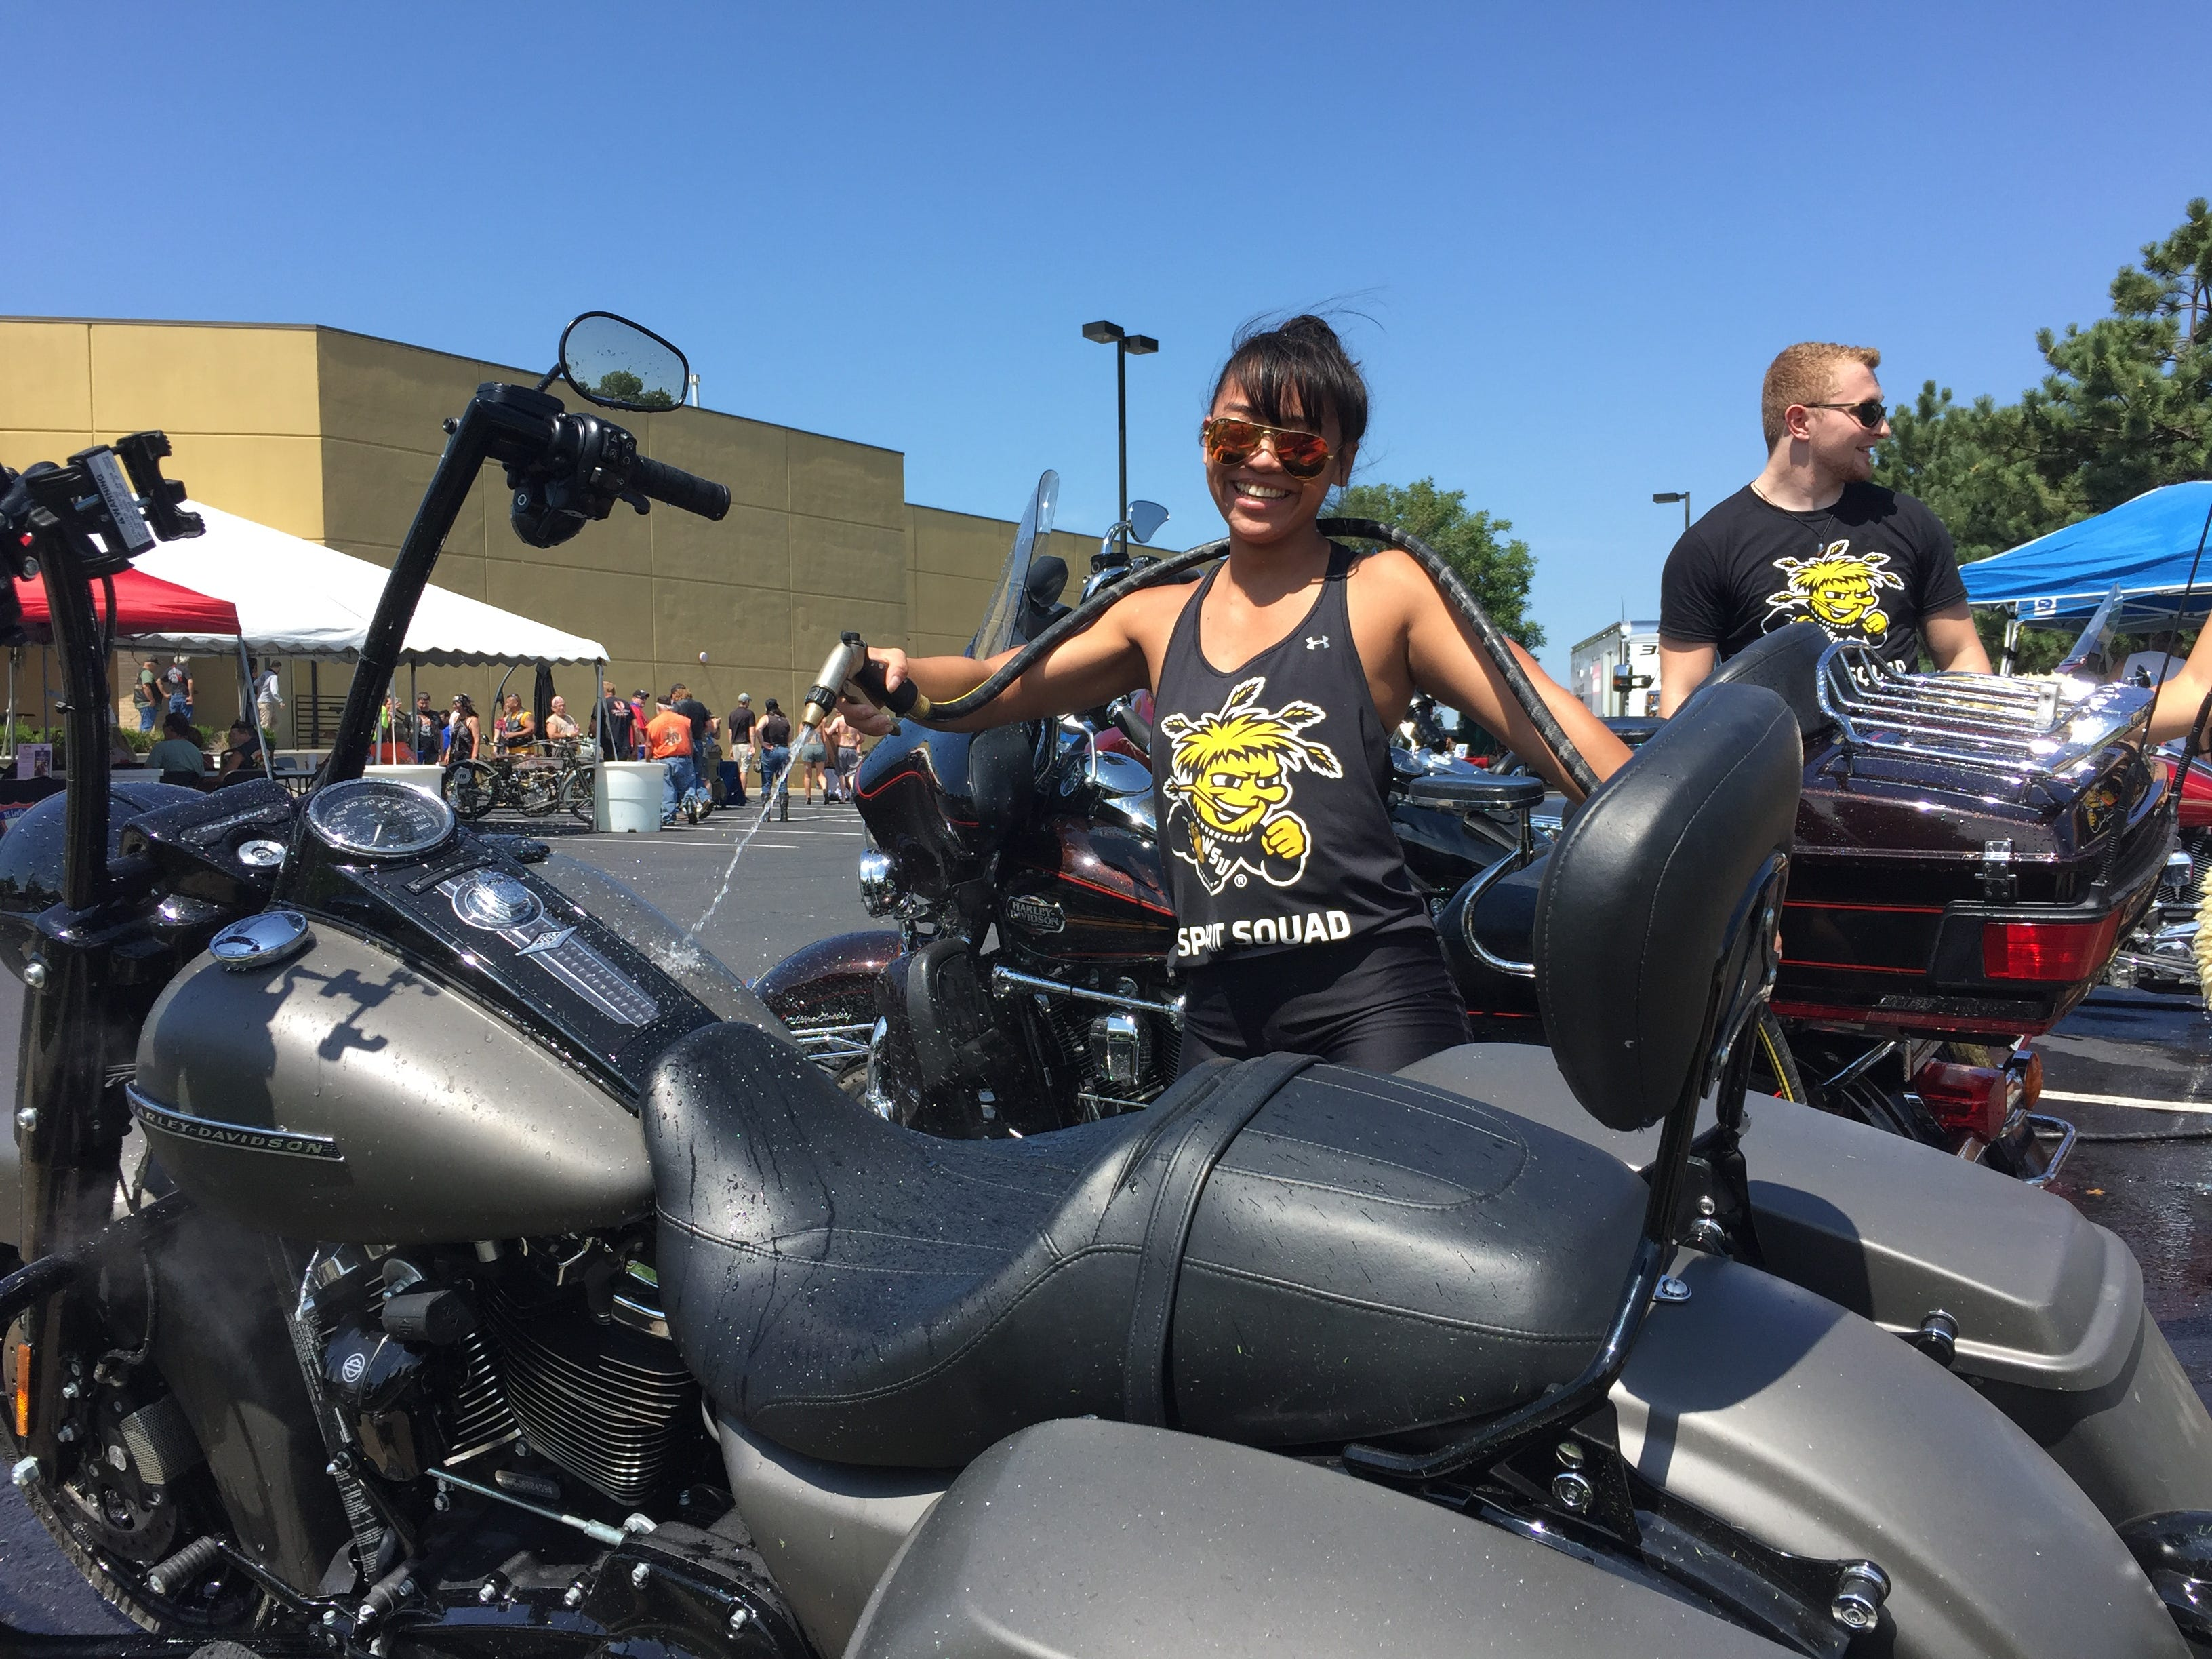 Elisa Bunting, 21, washes a bike at the Twister City Harley-Davidson Dealership in Park City, Kansas. Donations were used to support the Wichita State University Spirit Squad.